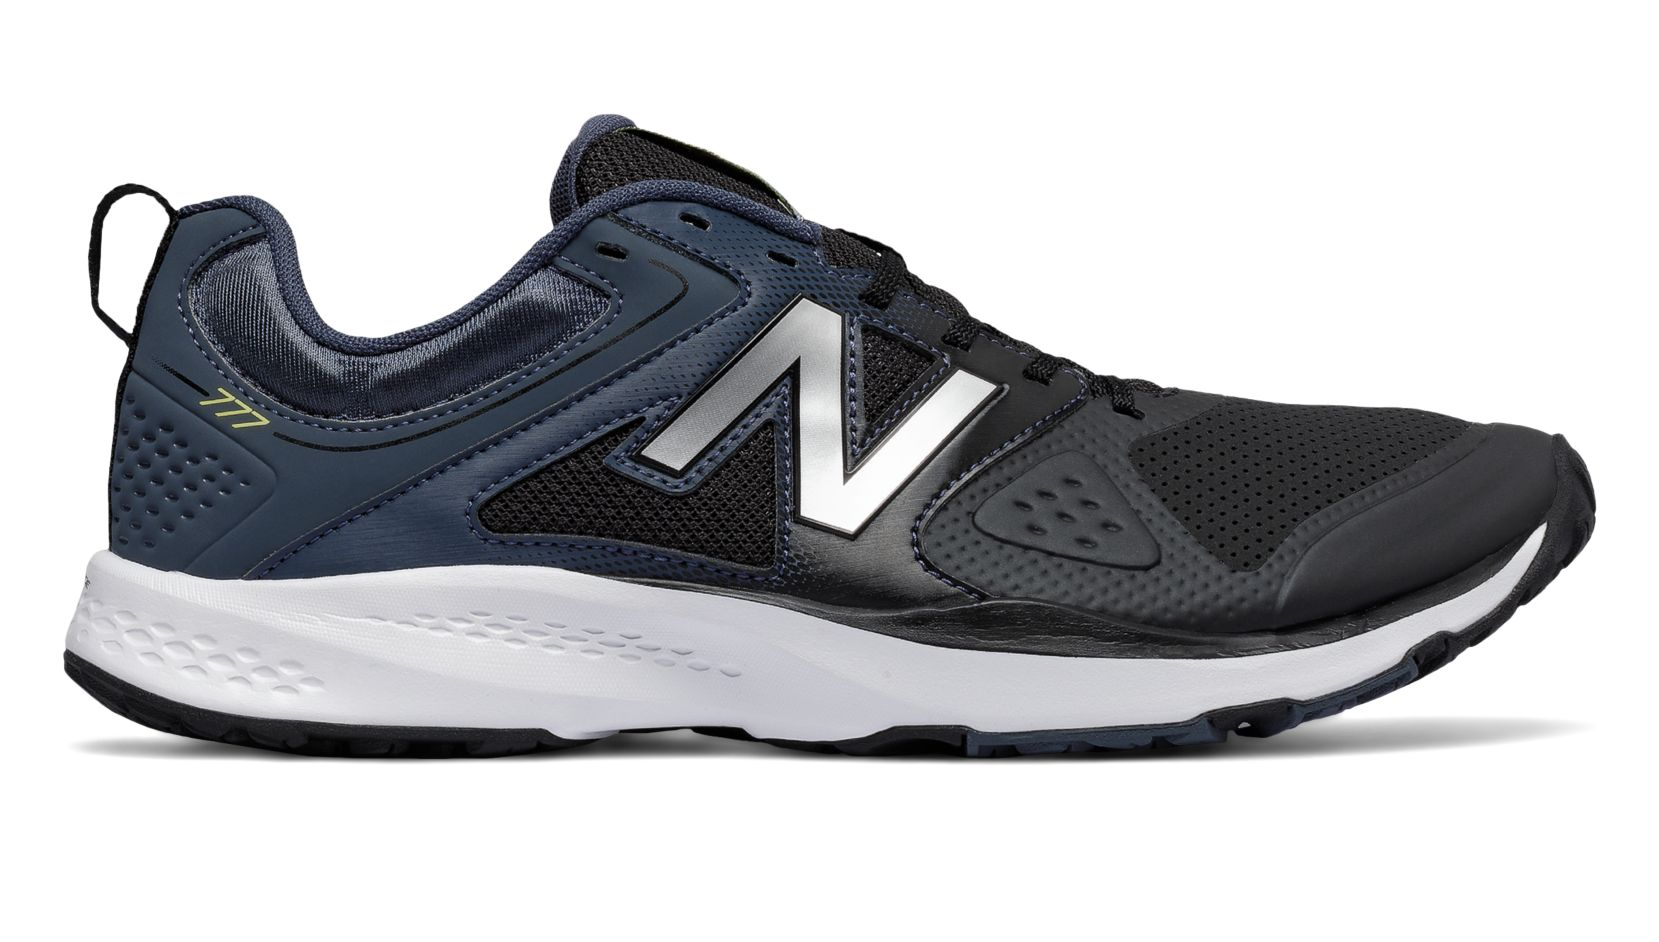 NB New Balance 777v2 Trainer, Black with Grey